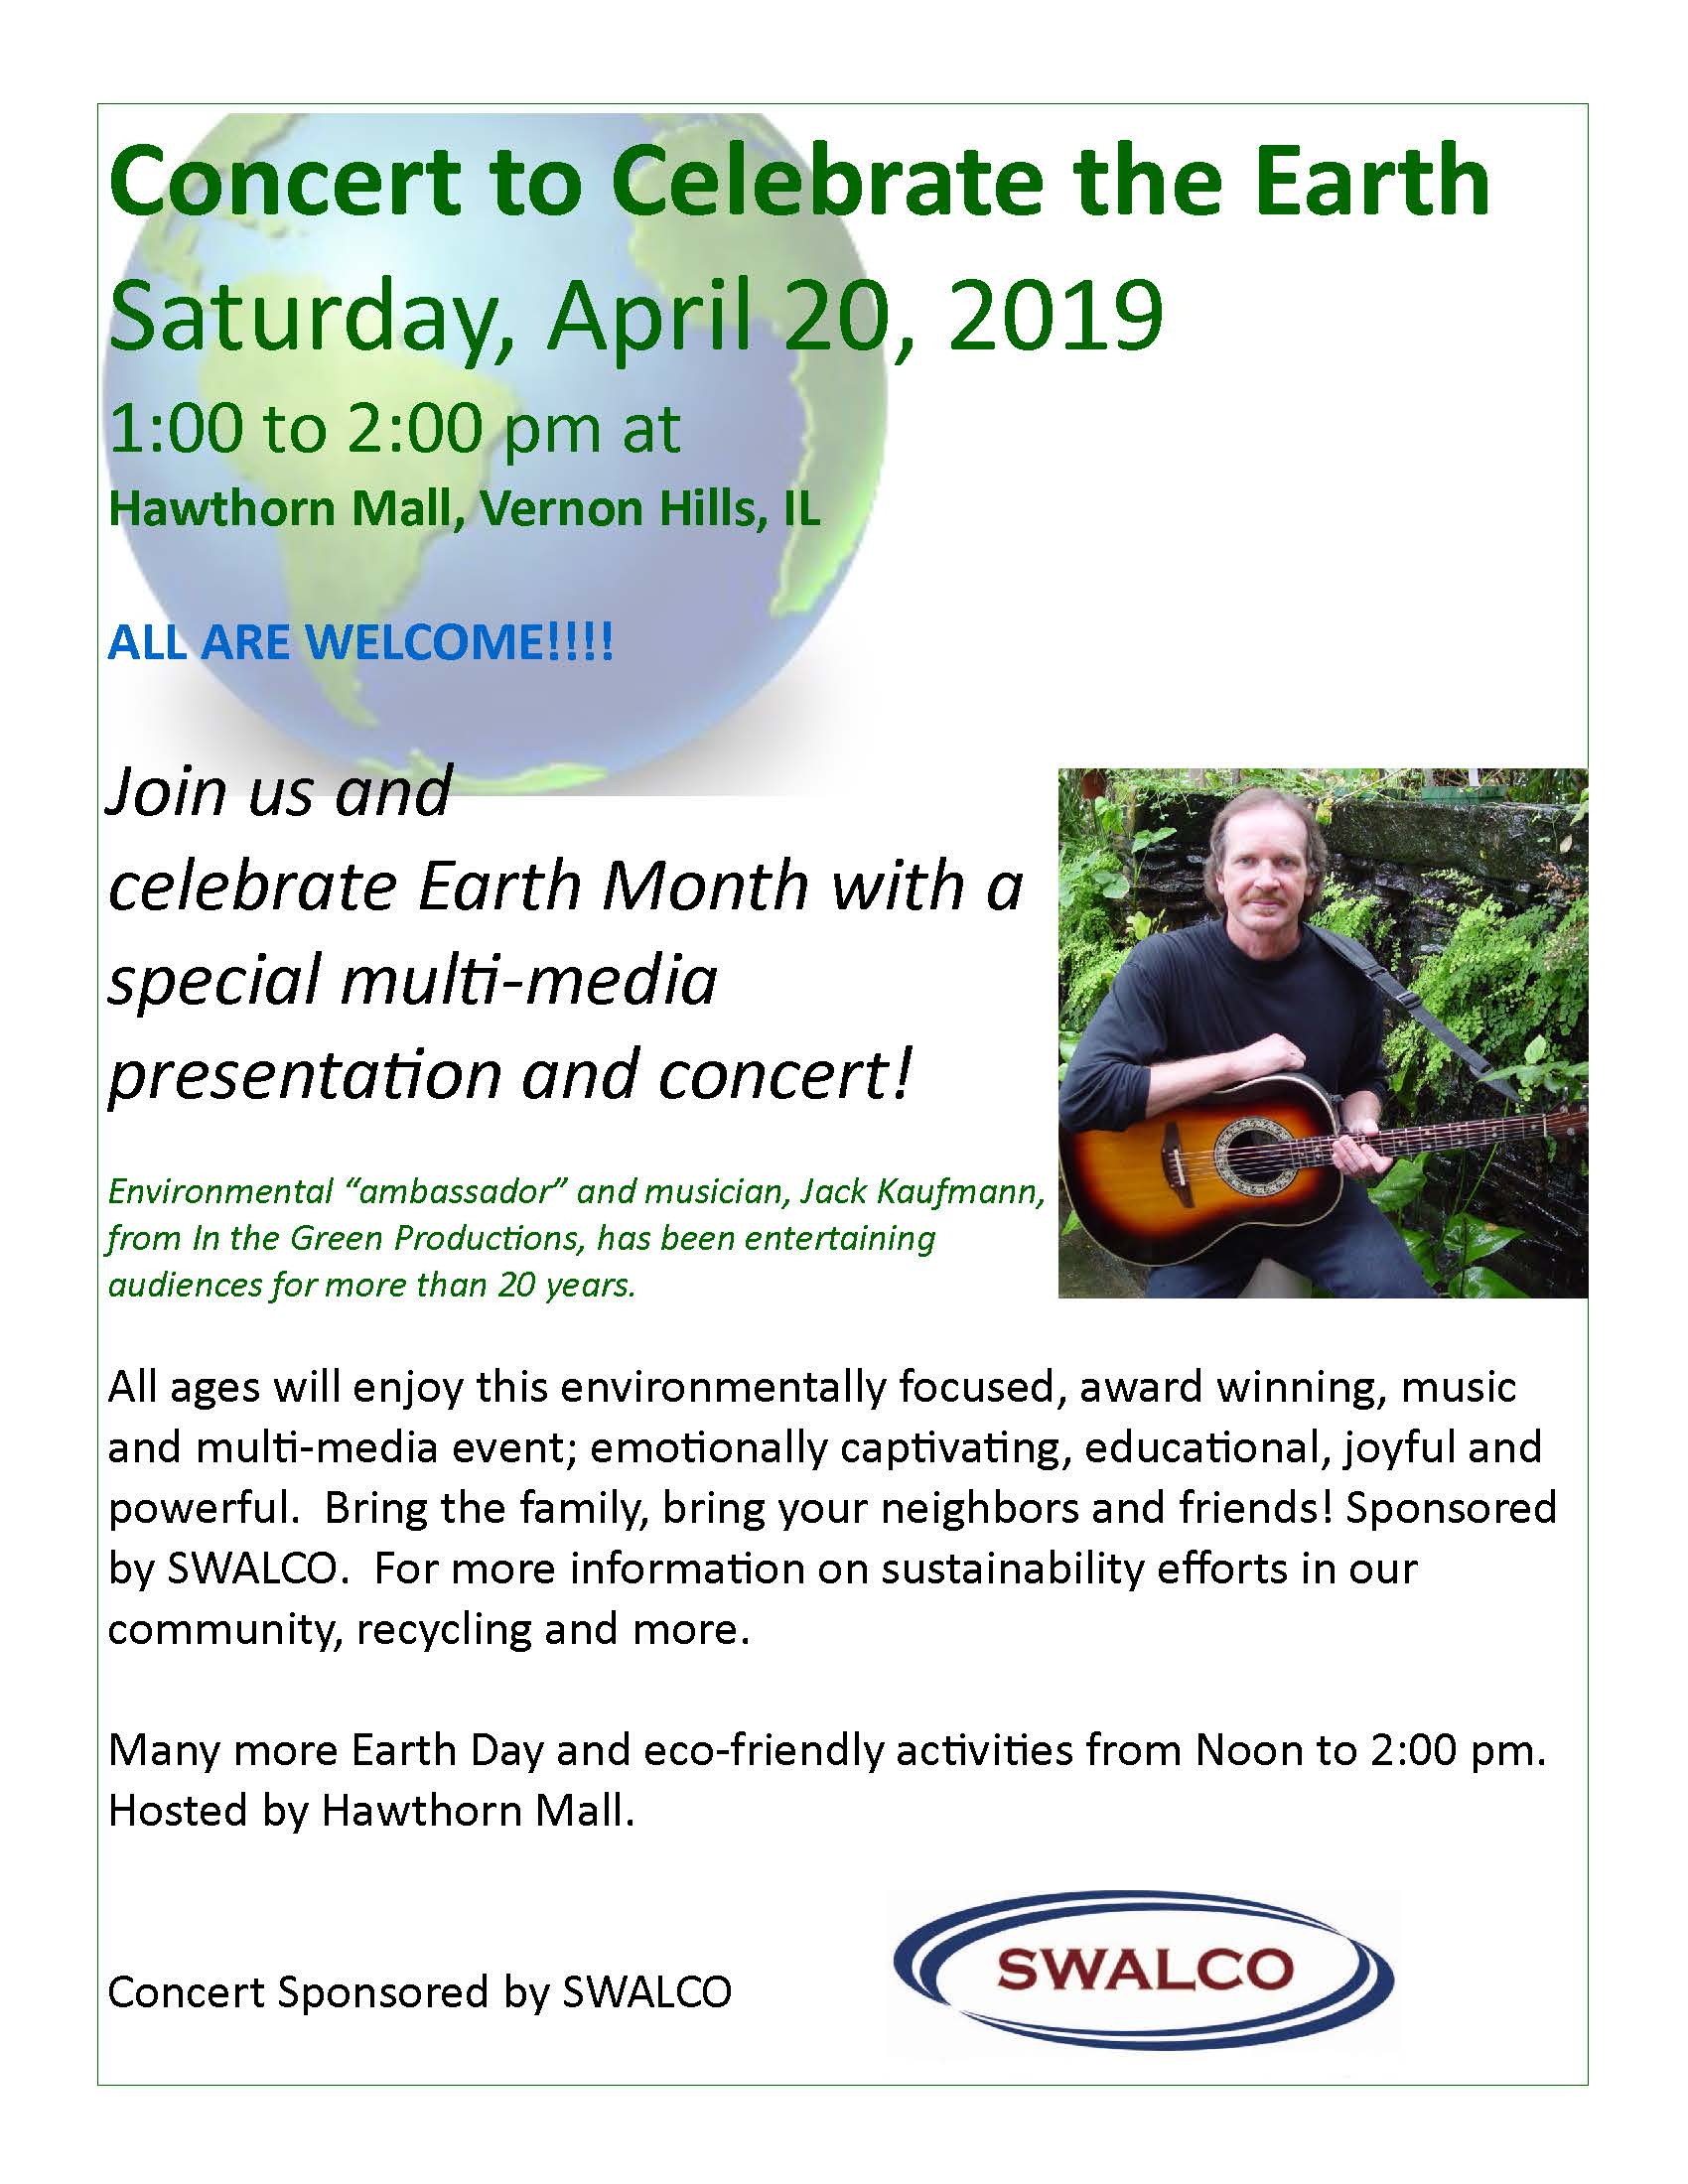 Jack April 2019 Hawthorn Mall Concert Flyer